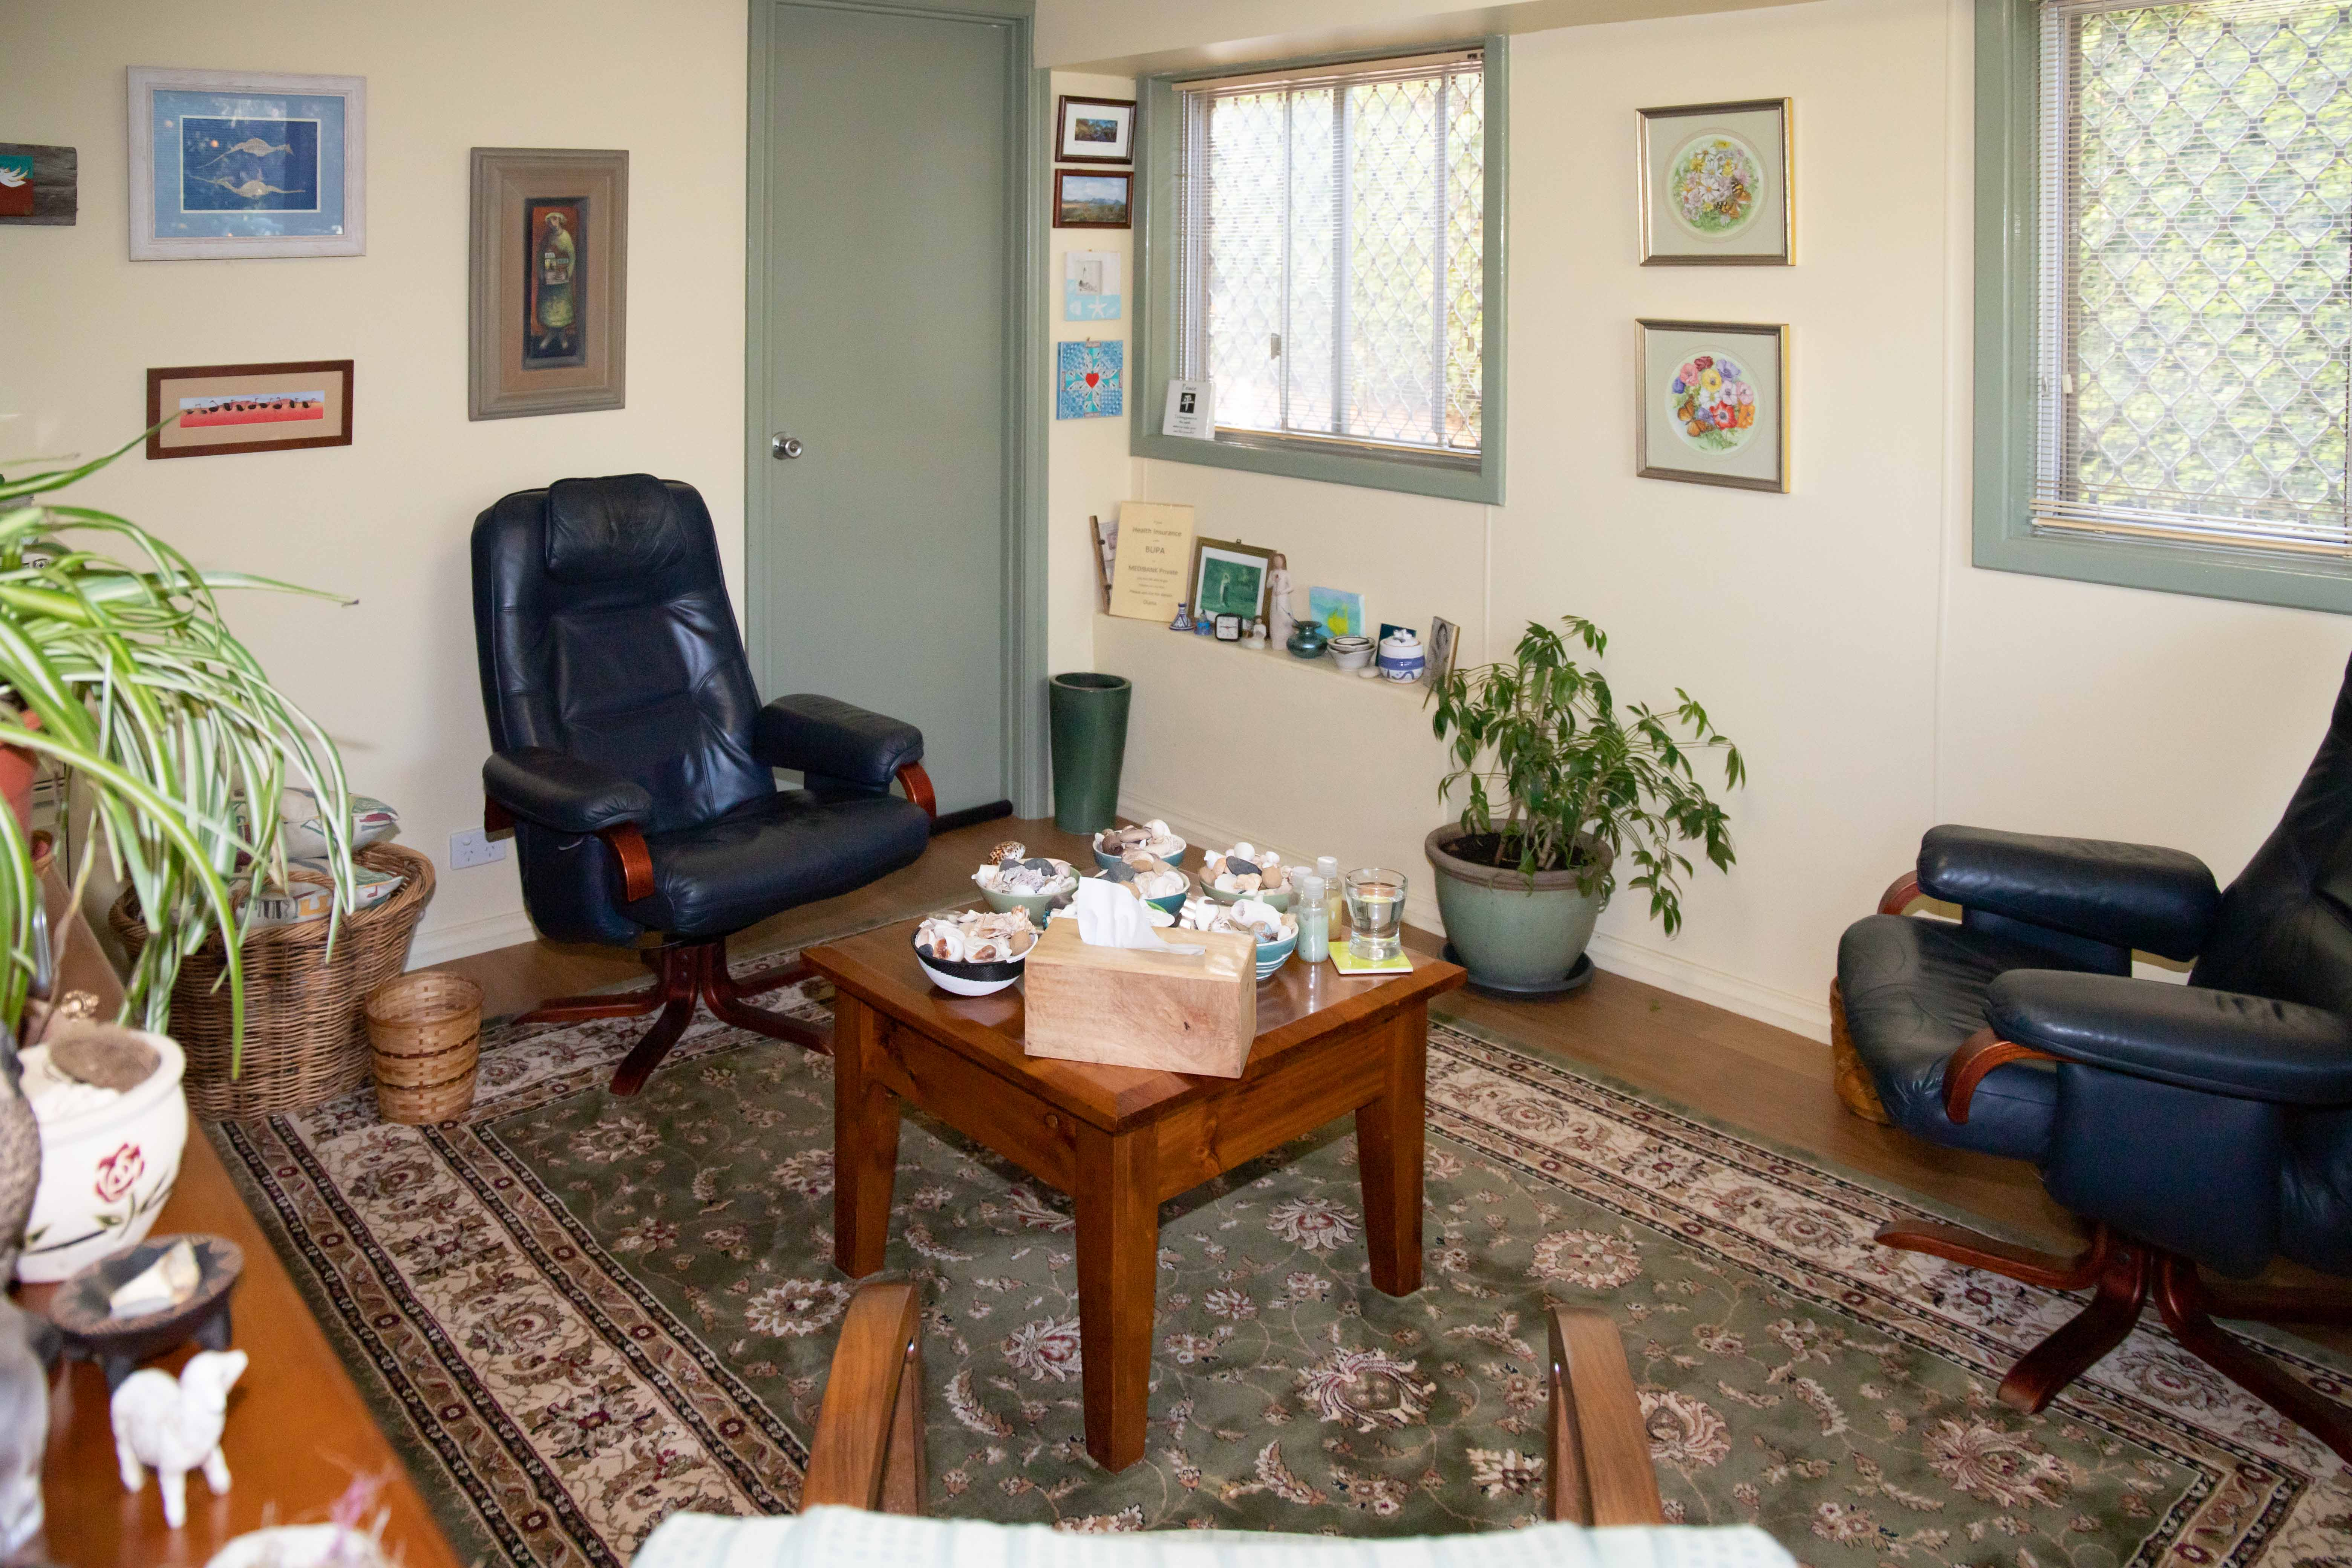 Photo of the treatment room